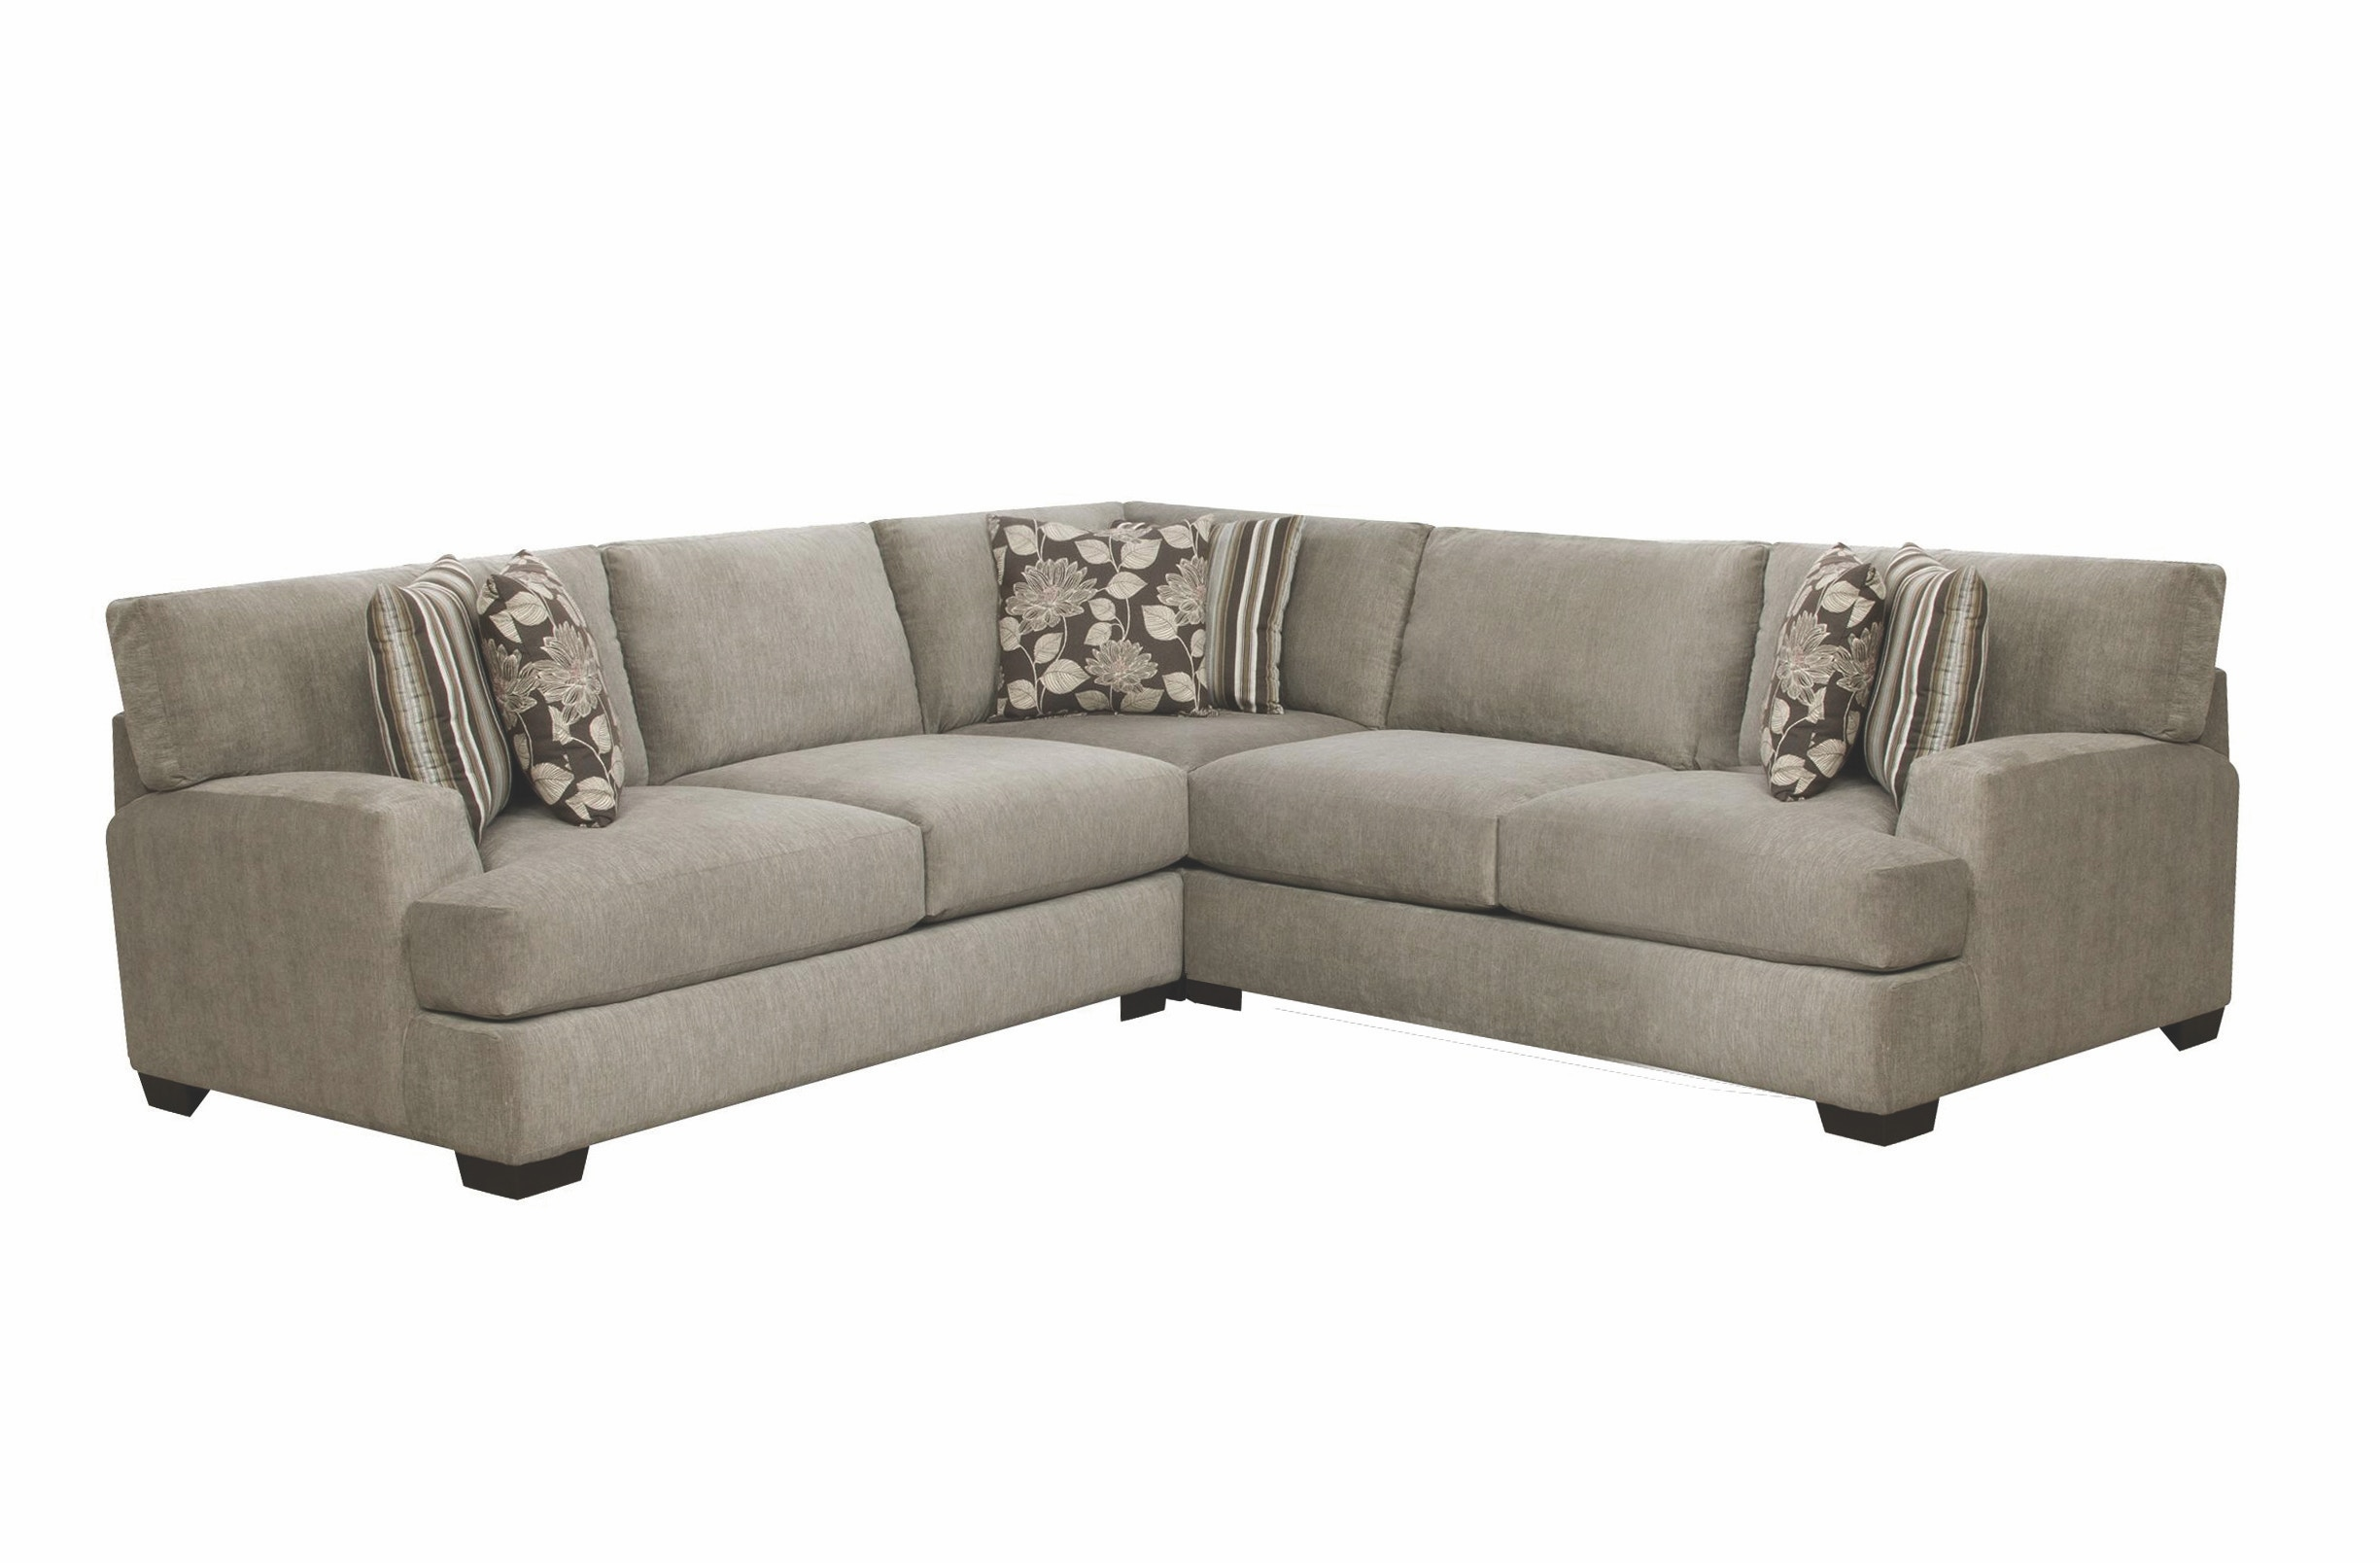 Corinthian sectional corinthian 862 sectional sofa with for Sectional sofa furniture fair